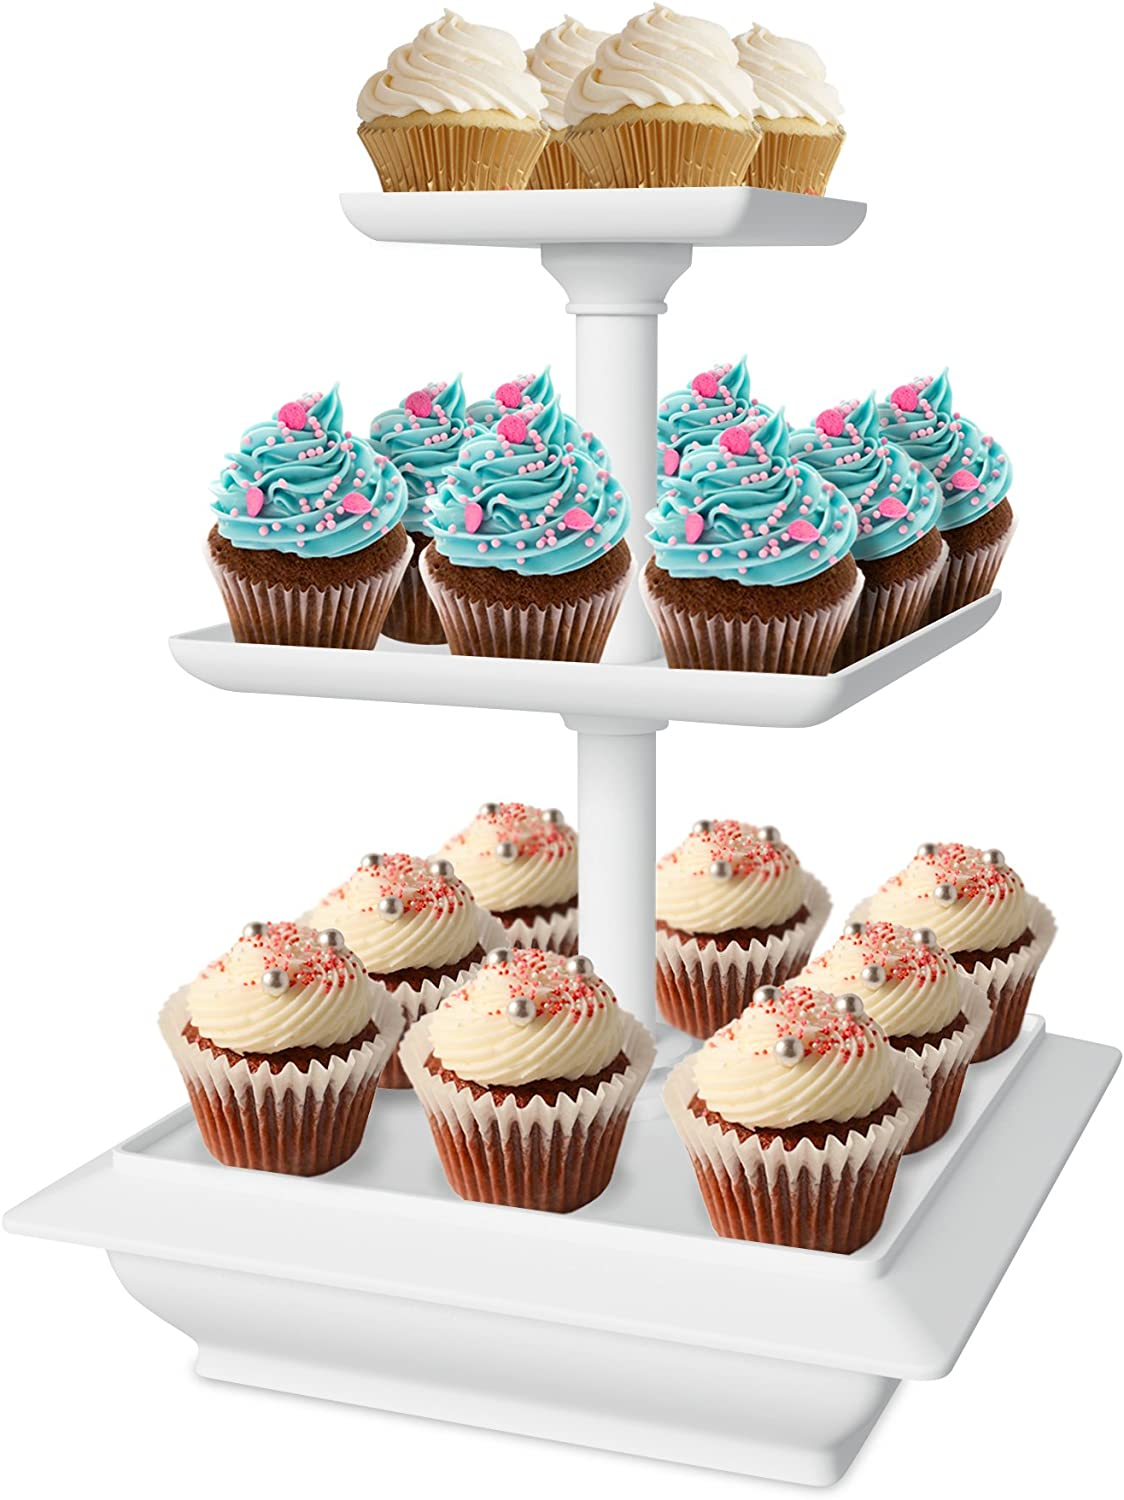 Chef Buddy 3-Tier Cupcake Dessert Stand, White